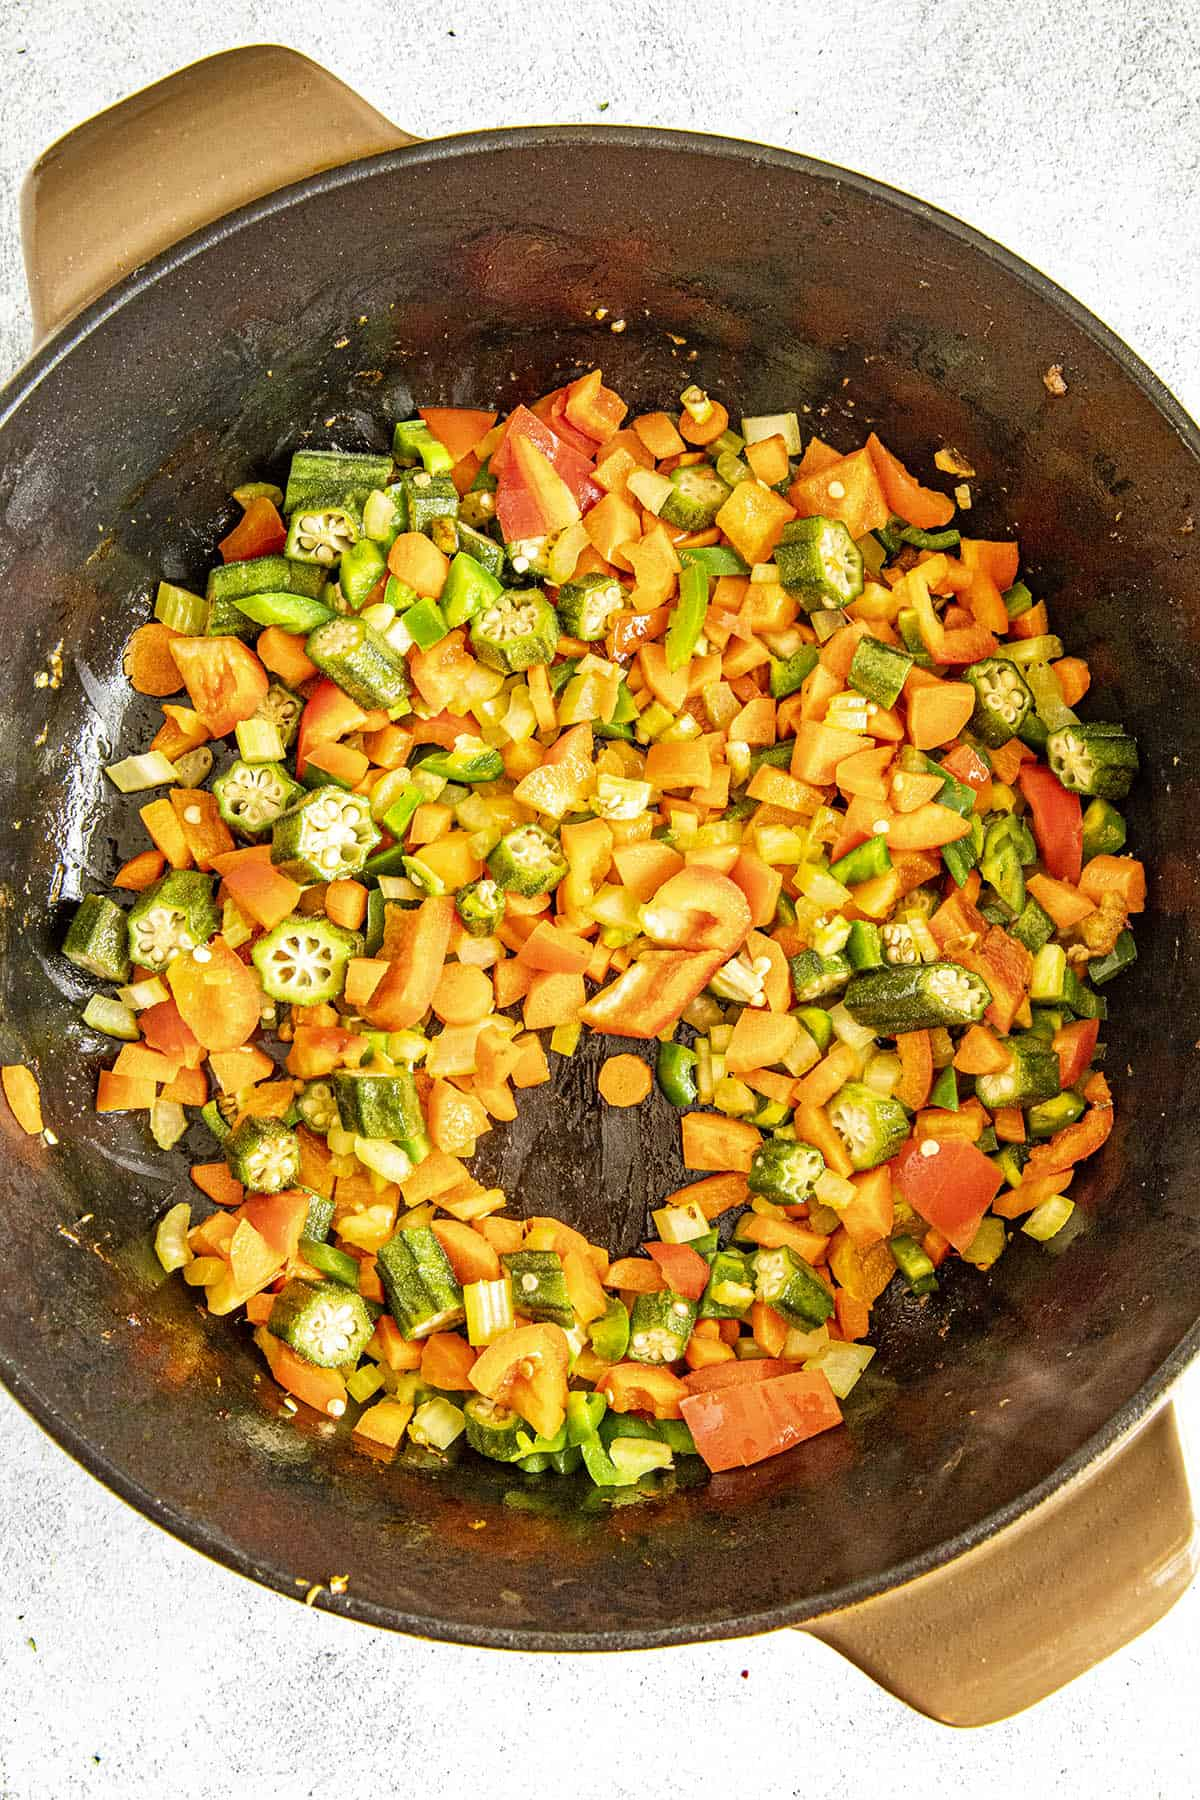 Cooking down the vegetables to make burgoo